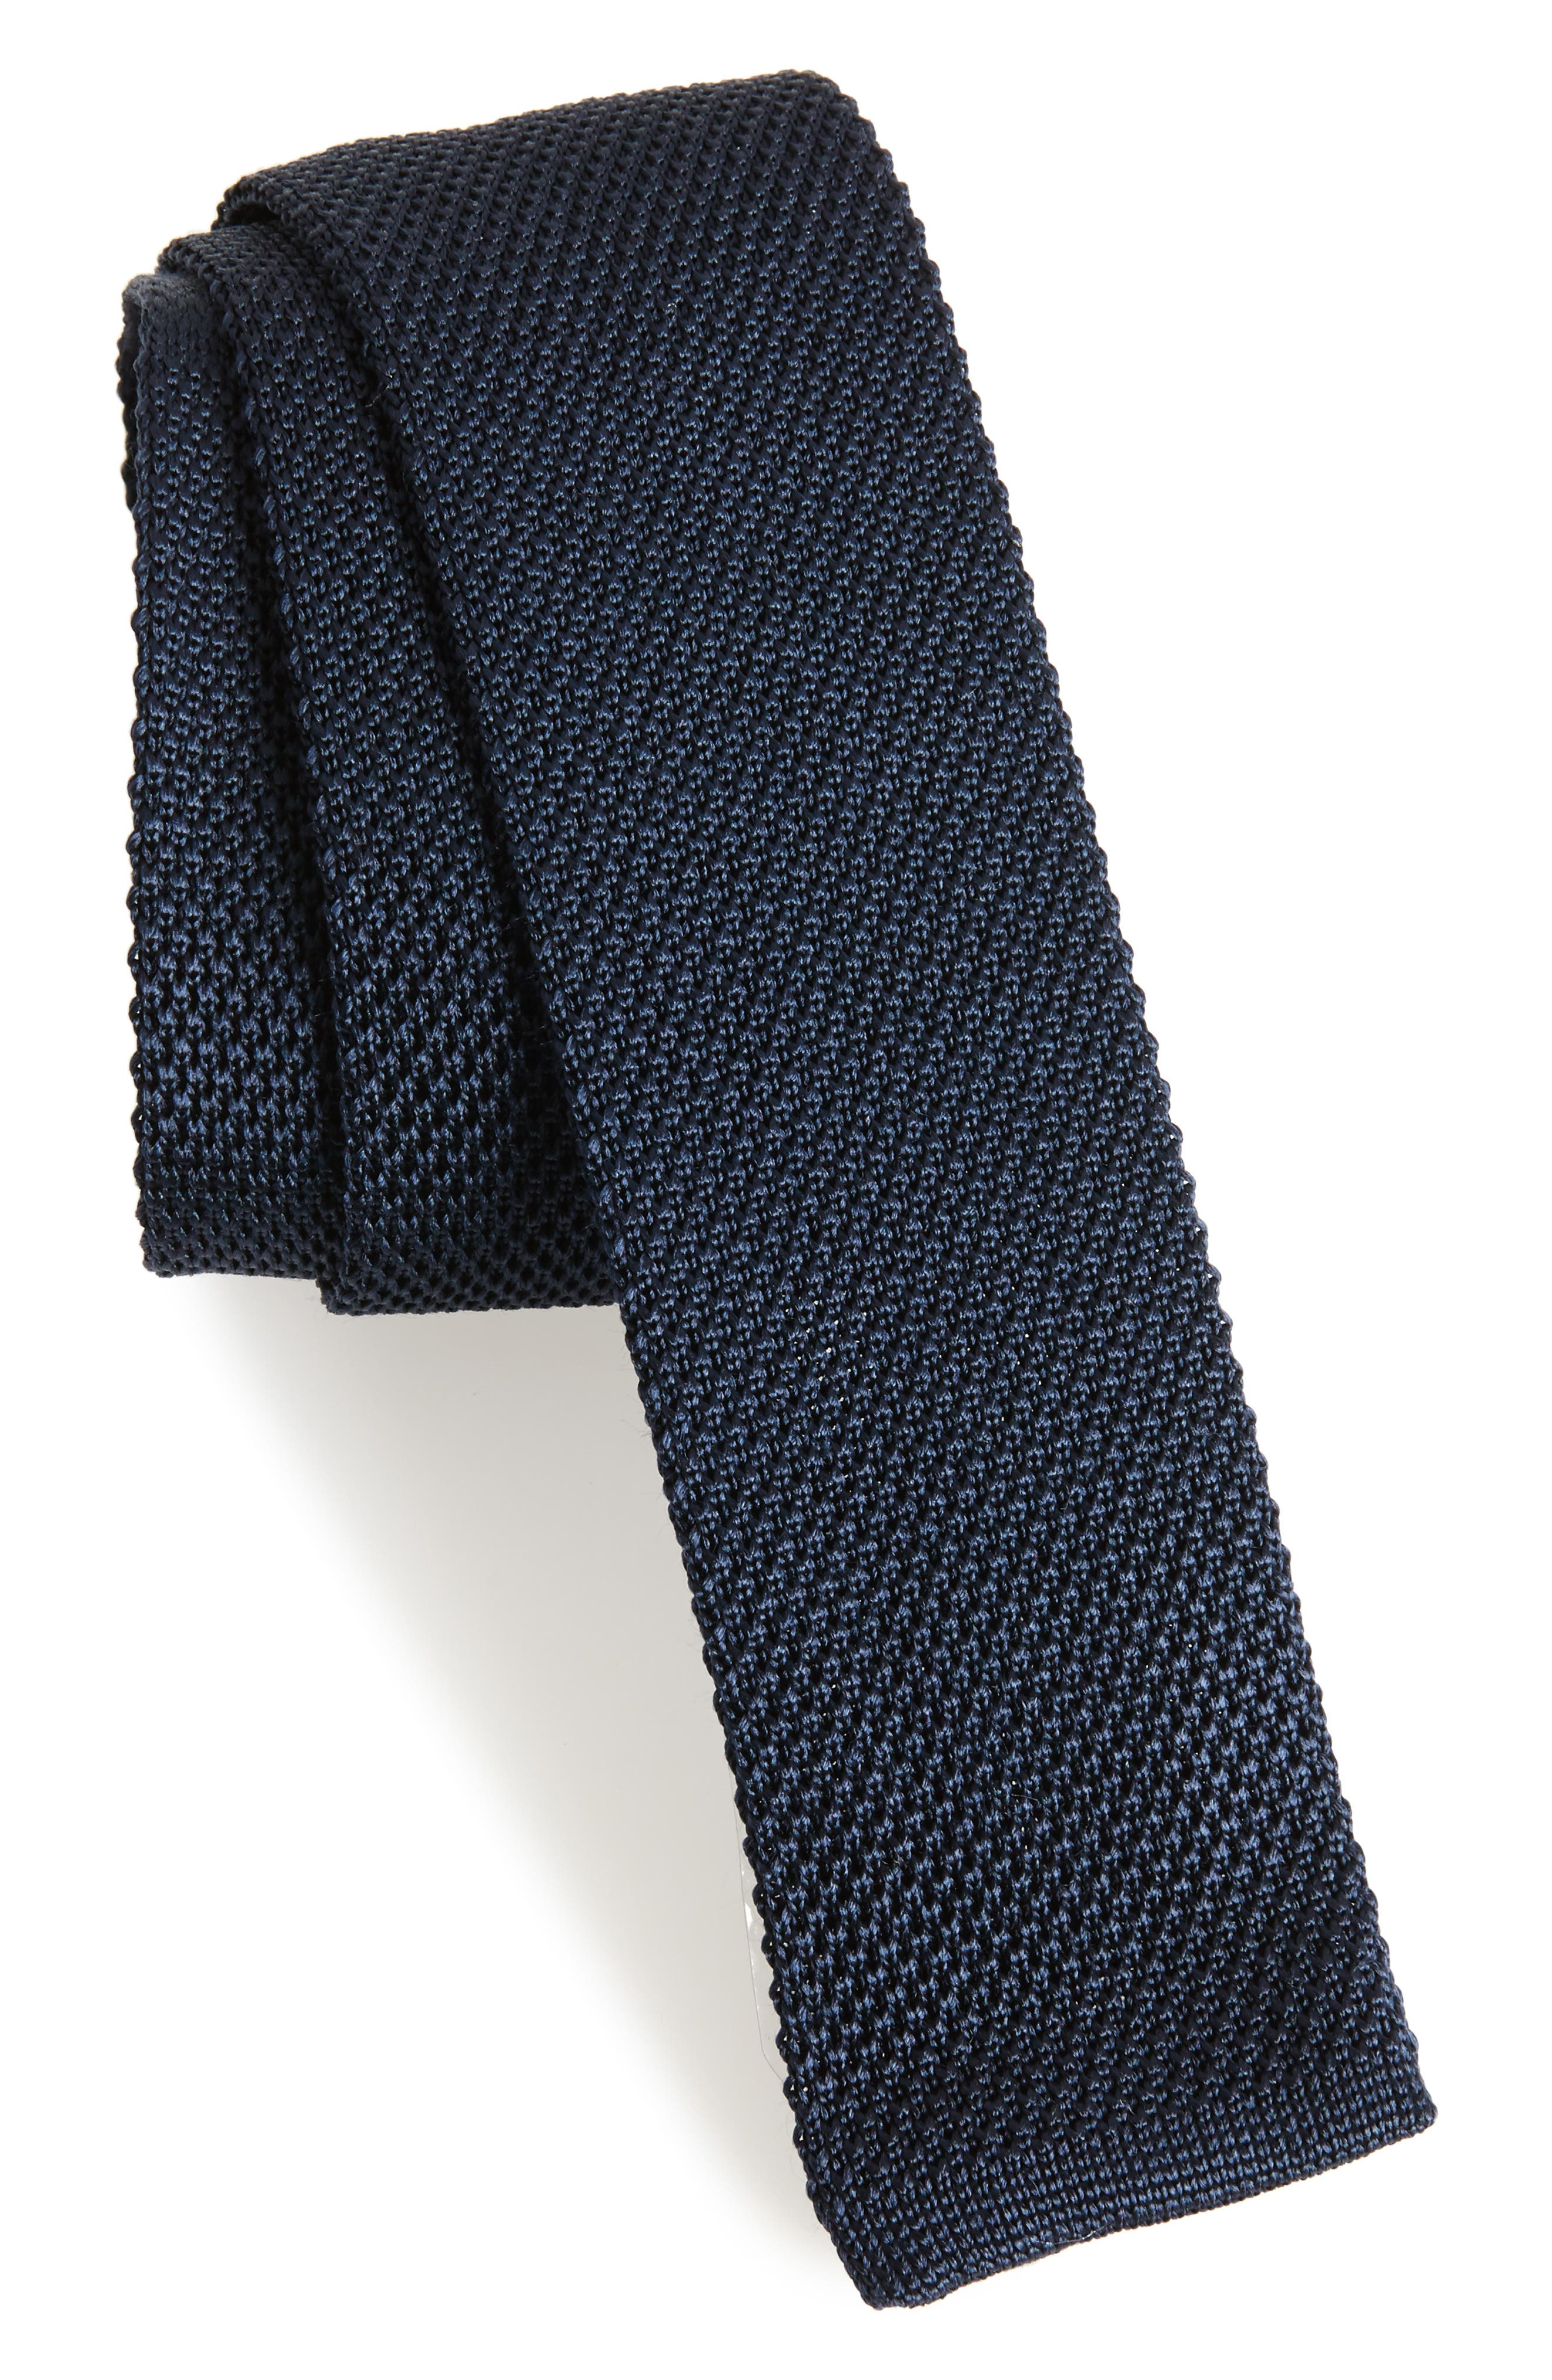 Alternate Image 1 Selected - Eleventy Solid Knit Silk Tie